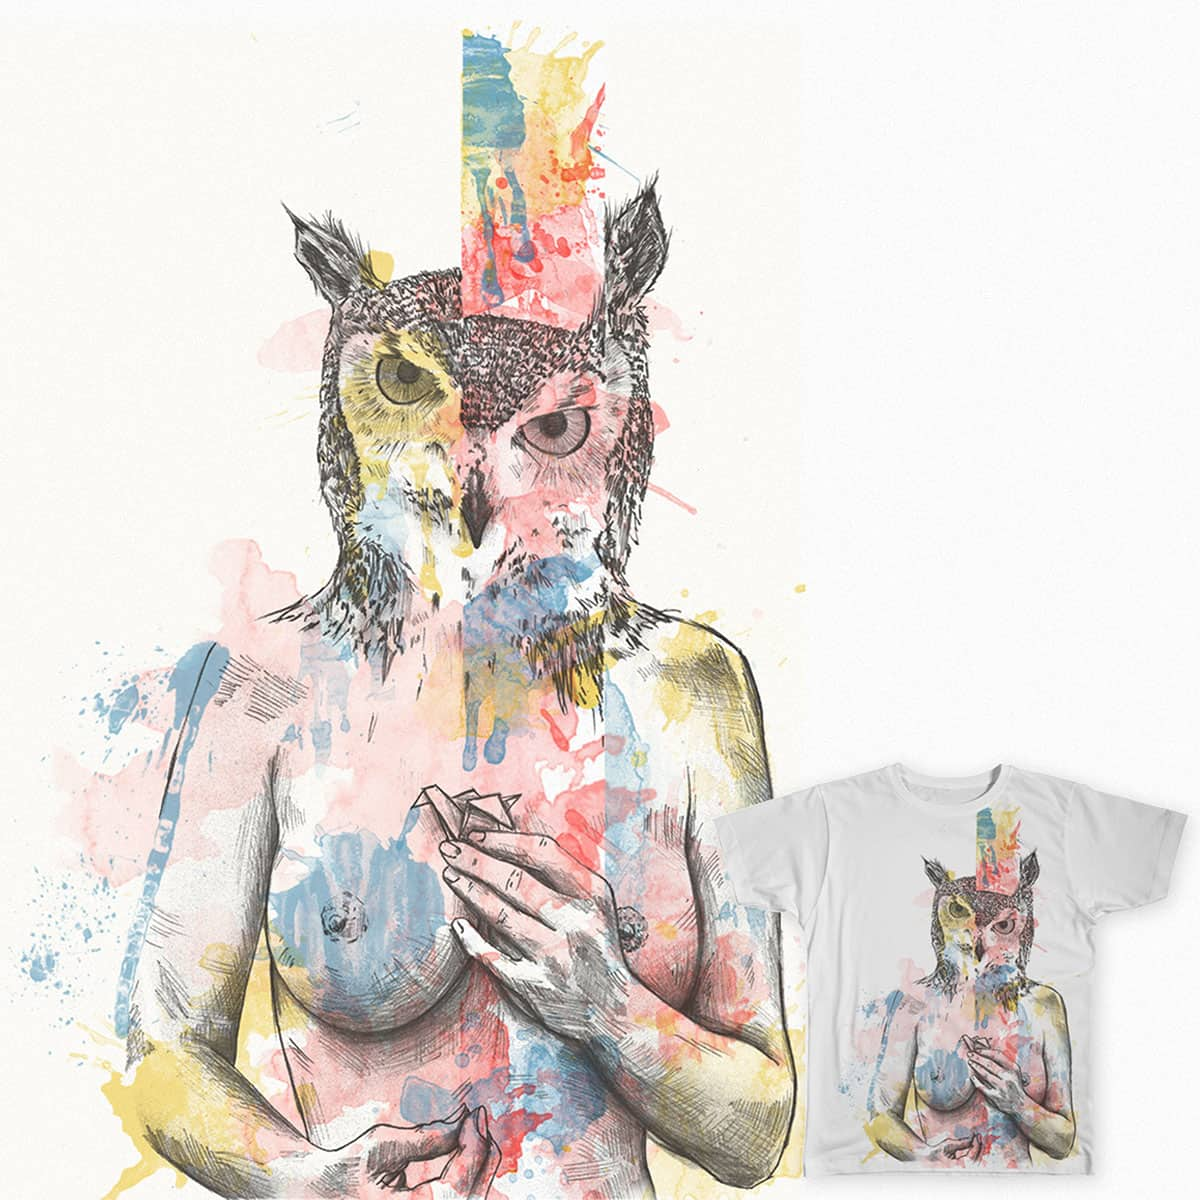 ORIGAMI. by JBLE 3000 on Threadless